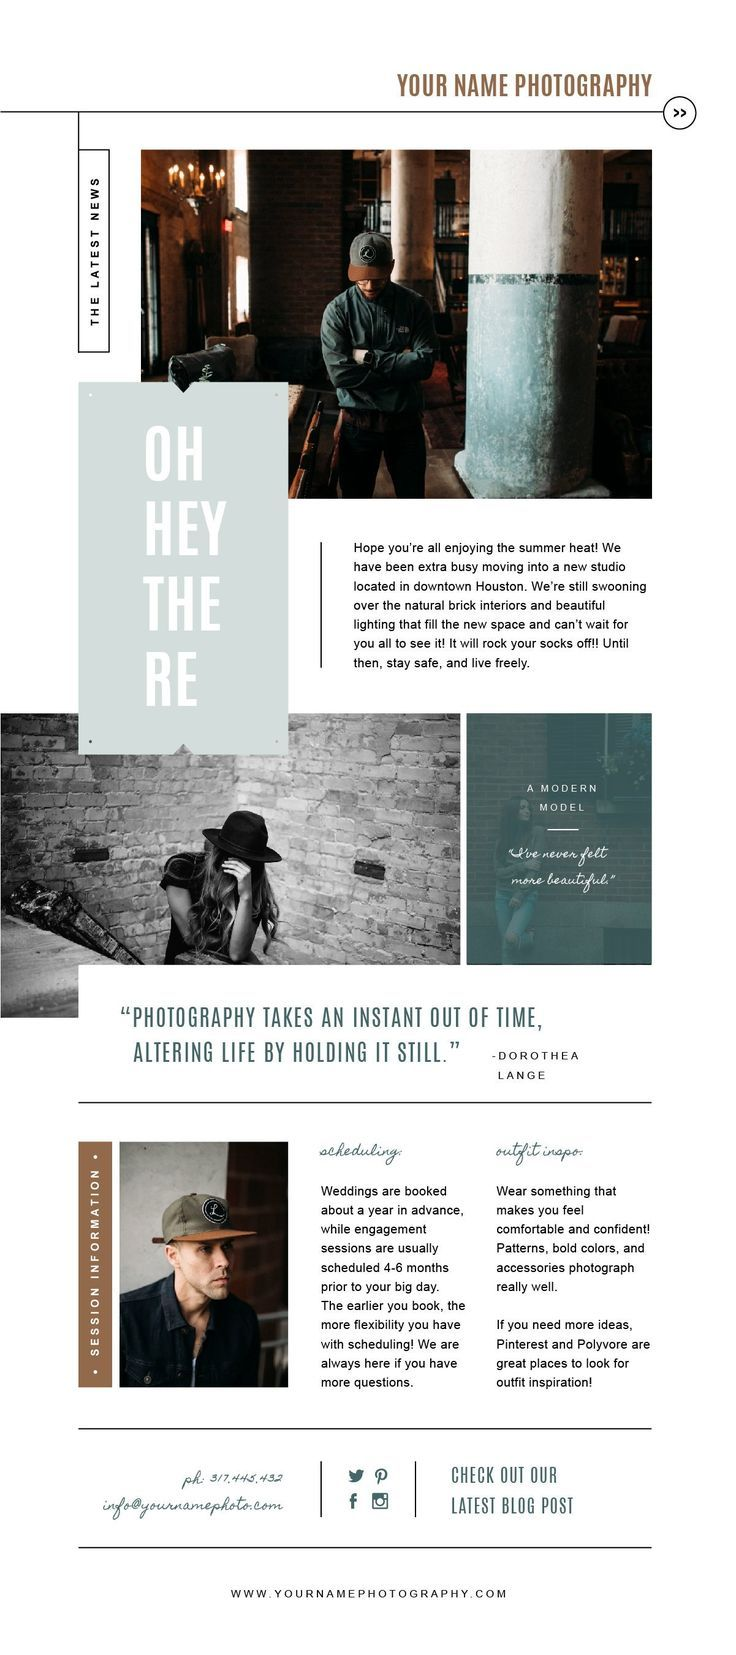 Sale Newsletter Template For Email Pinterest And Social Etsy Newsletter Design Layout Photography Marketing Templates Newsletter Design Templates